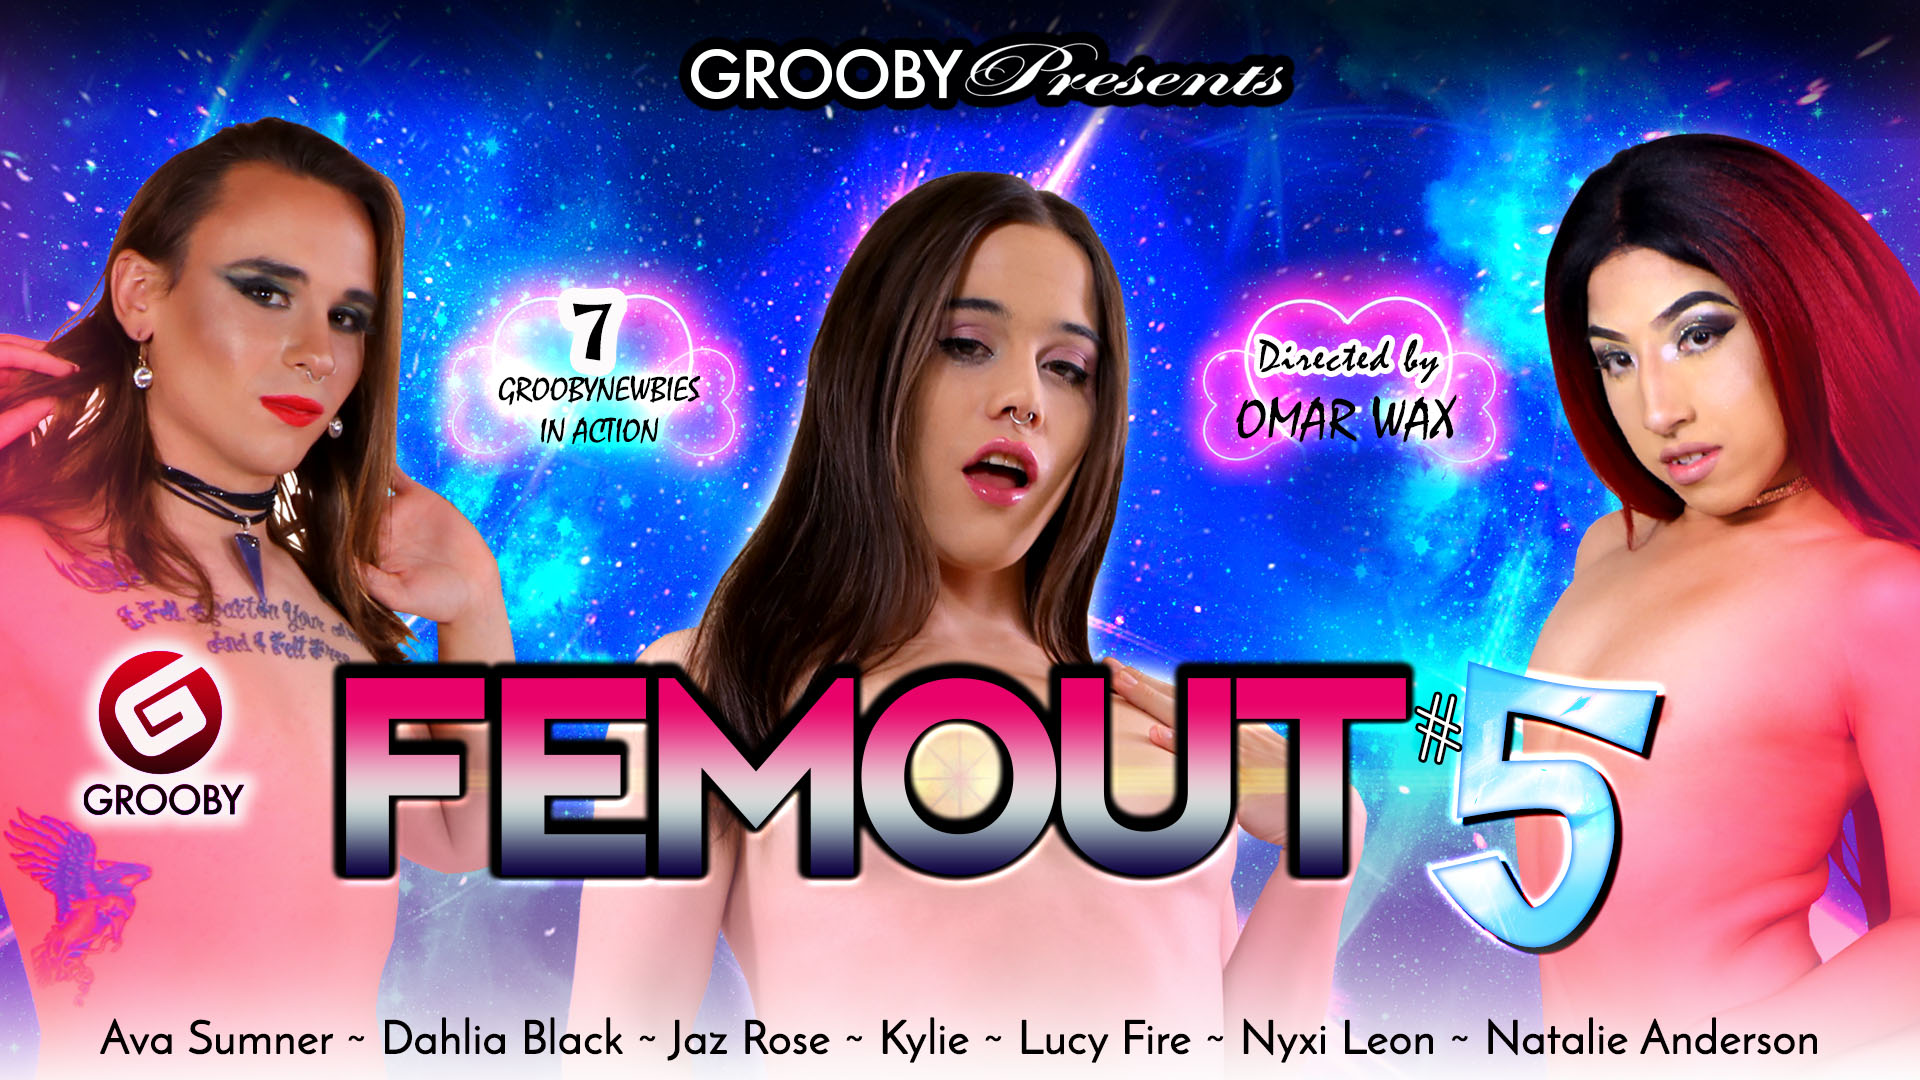 Femout #5 DVD -Trailer